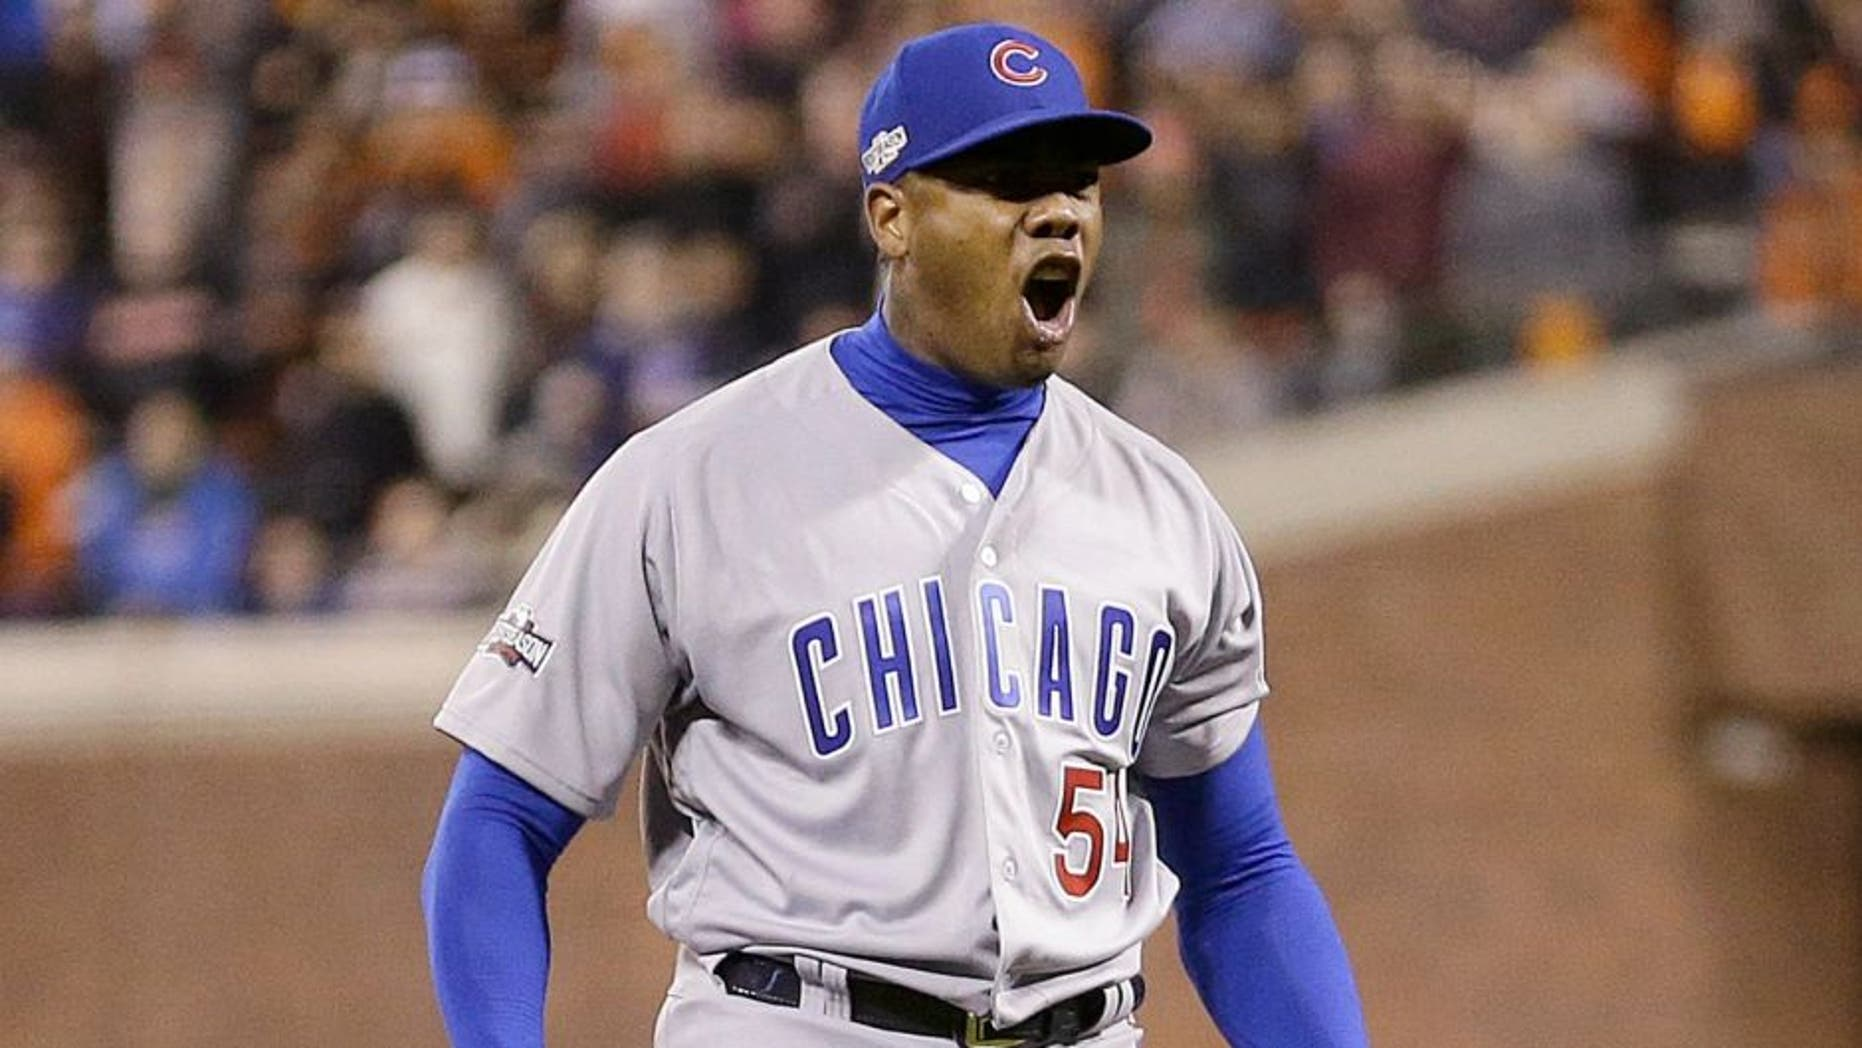 Chicago Cubs pitcher Aroldis Chapman (54) celebrates after Game 4 of baseball's National League Division Series against the San Francisco Giants in San Francisco, Tuesday, Oct. 11, 2016. The Cubs won 6-5. (AP Photo/Ben Margot)